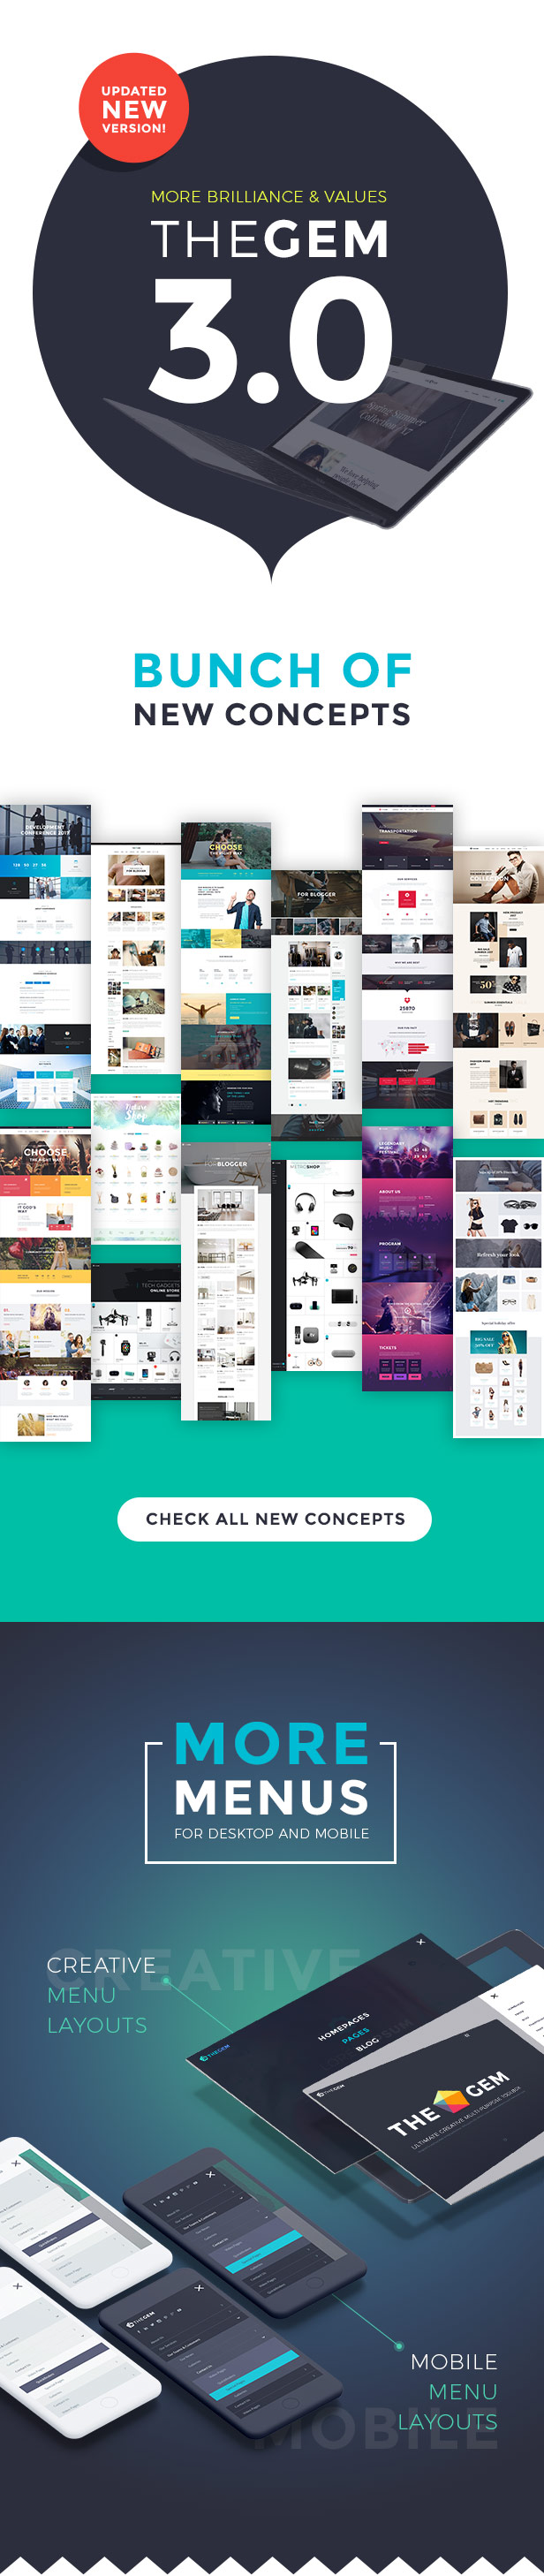 TheGem - Creative Multi-Purpose High-Performance WordPress Theme - 5